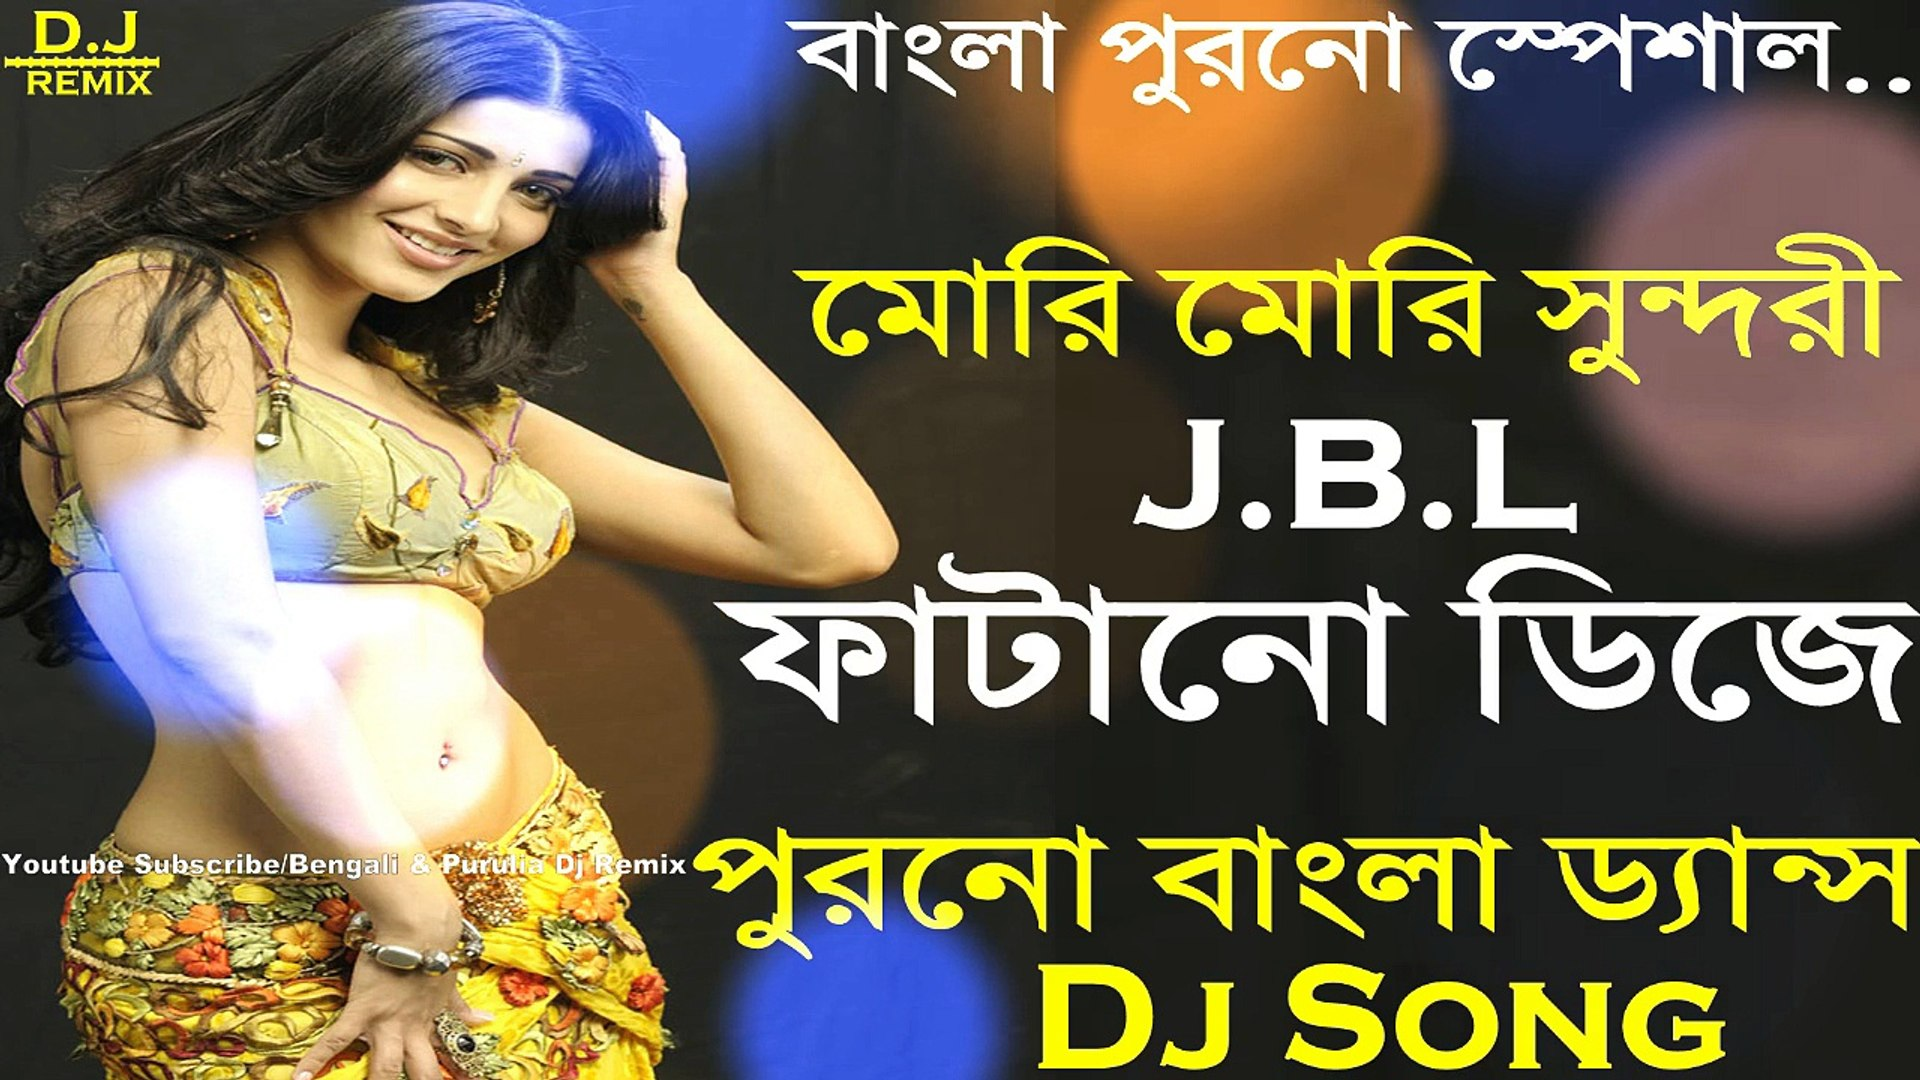 Mori Mori Sundori (J.B.L Fatano Dance Mix) Dj Song || 2018 OLD Bengali Dhamaka Mix